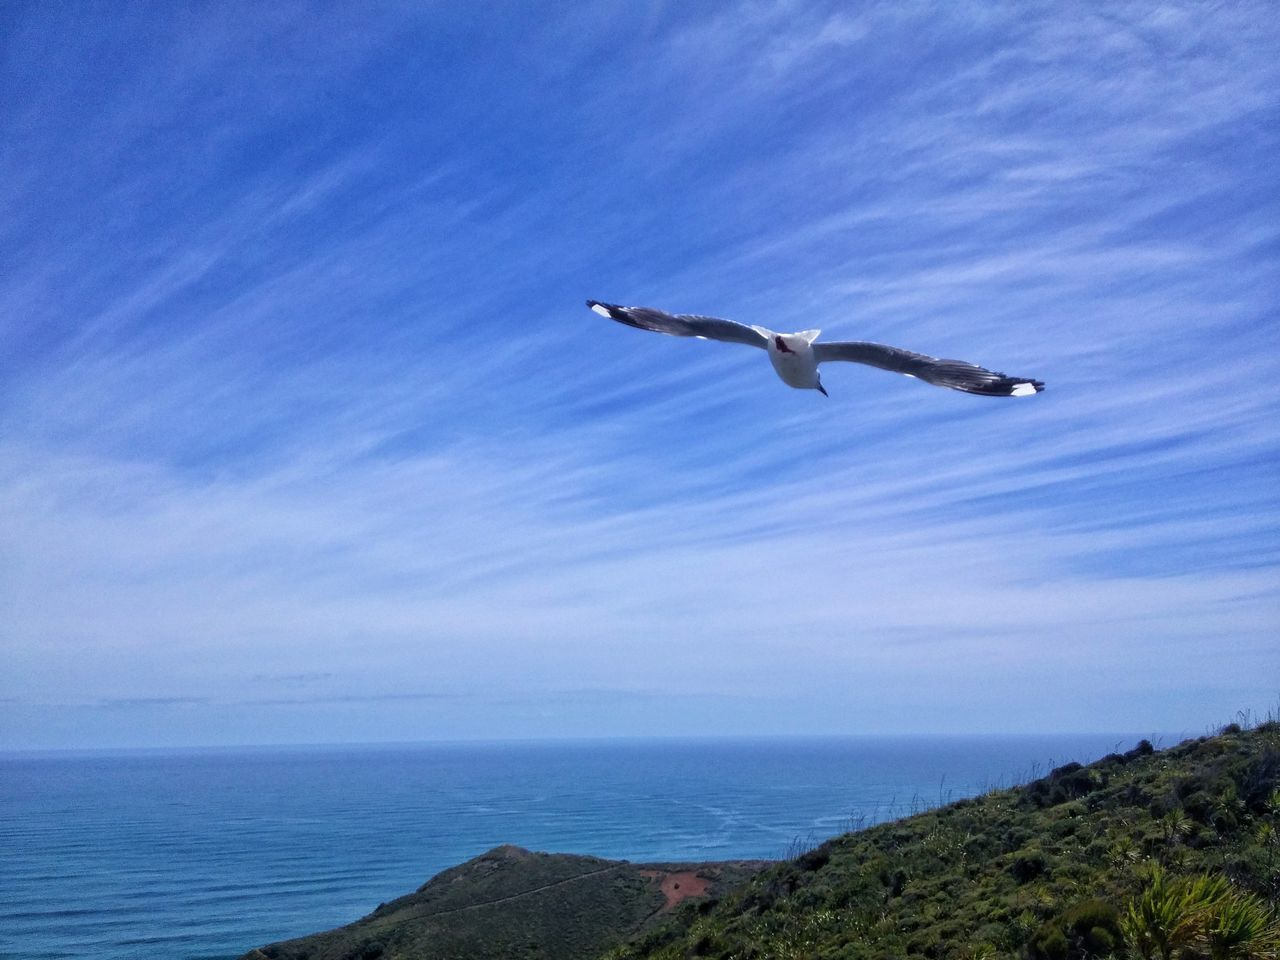 https://youtu.be/343QD5PRB7w 🐚🌴Fly..... Are We There Yet! Motuopao Island Peach Colored Dunes Twilight Beach Te Paki Dunes Te Werahi Beach Horizon Over Water SH 1N Aupouri Peninsula SH1 New Zealand Cape Reinga New Zealand State Highway 1 New Zealand Summer NZ Style Travel Destinations Respect And Enjoy😍 Chillaxing My Country Is Beautiful Unapologetically Cape Maria Van Diemen New Zealand Culture Harakeke Mountain Landscape Flying Betterlandscapes